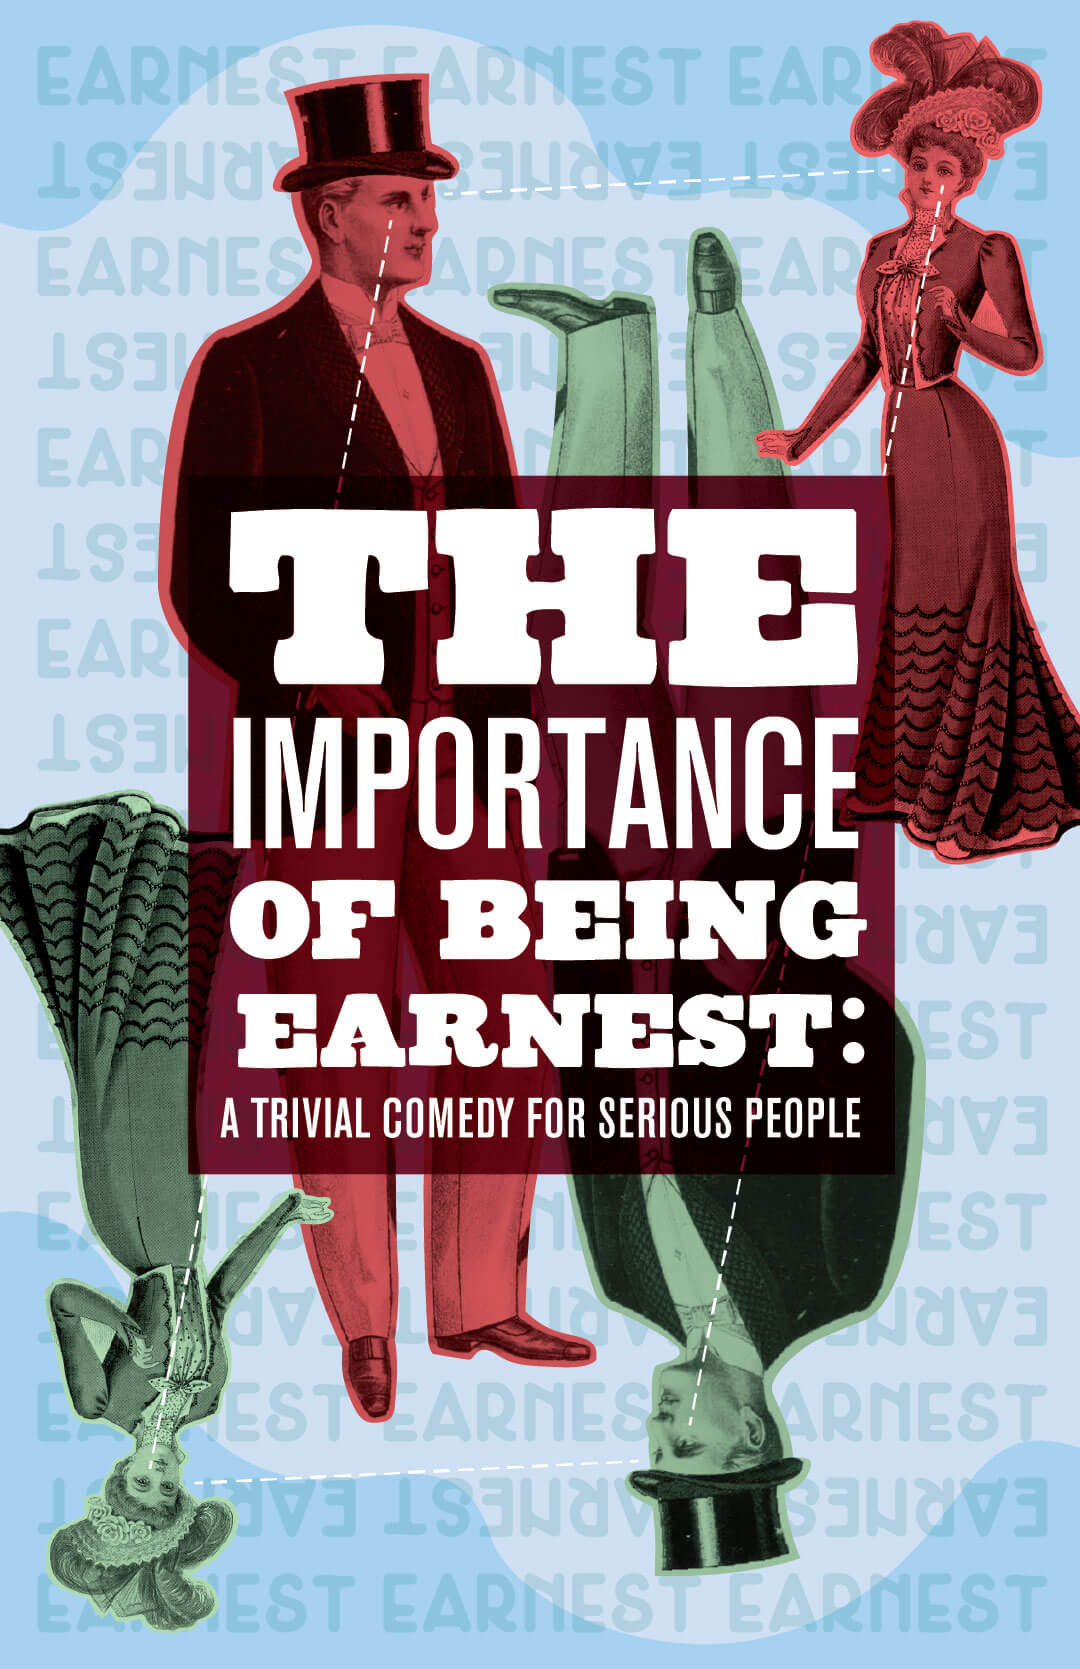 Virginia Tech School of Performing Arts show poster - The Importance of Being Earnest